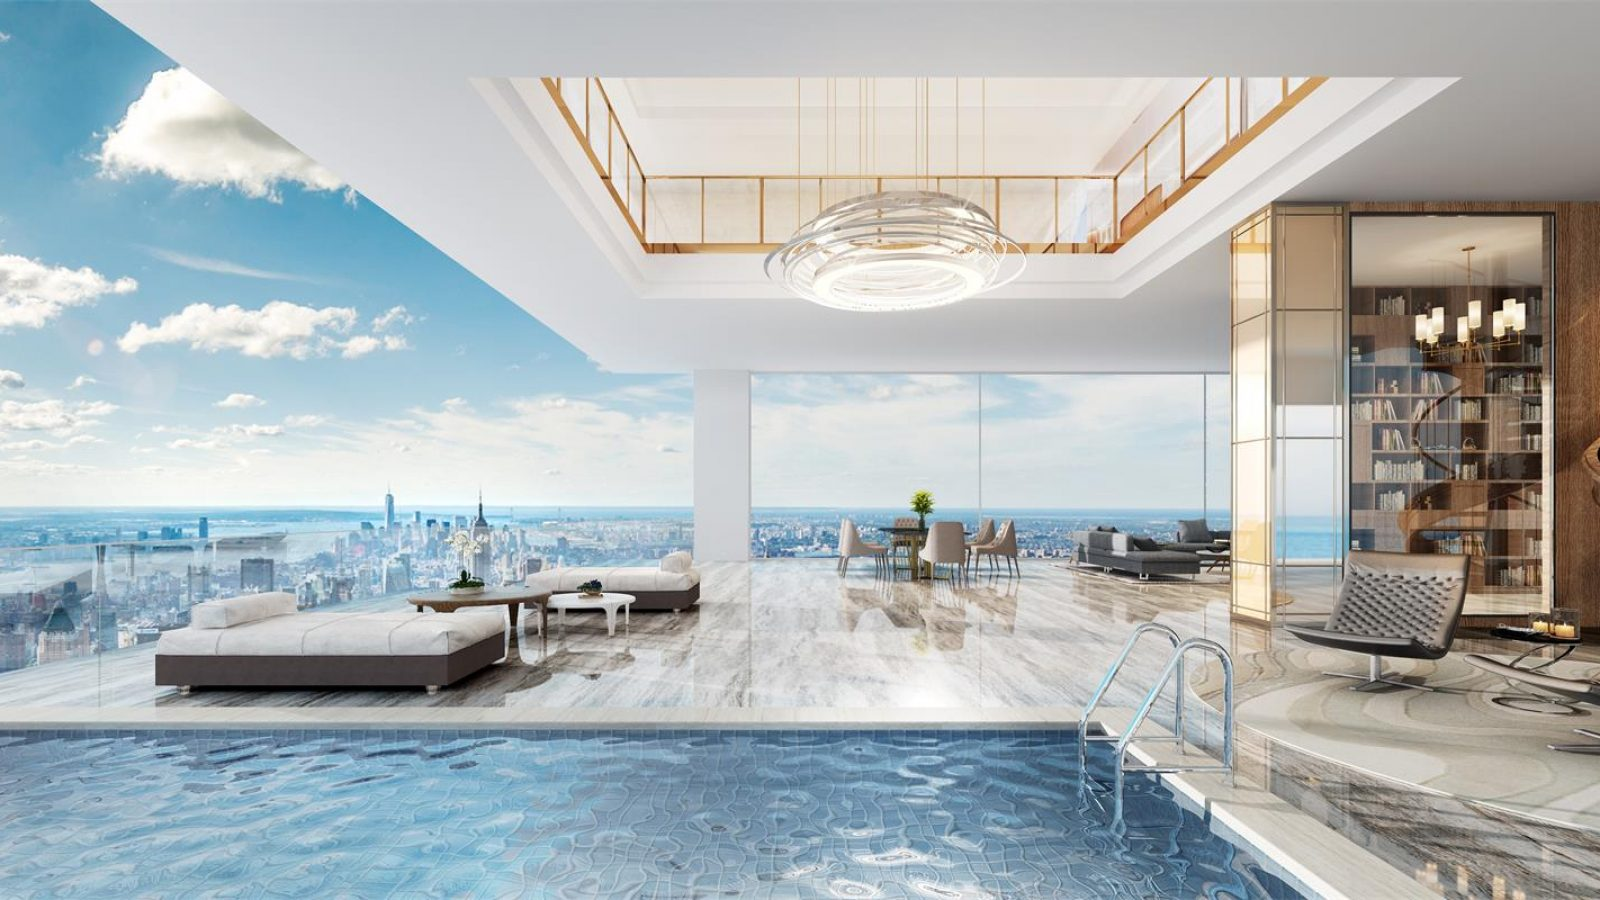 Architectural_Visualization_3D_Rendering_AIMIRCG.COM_101060